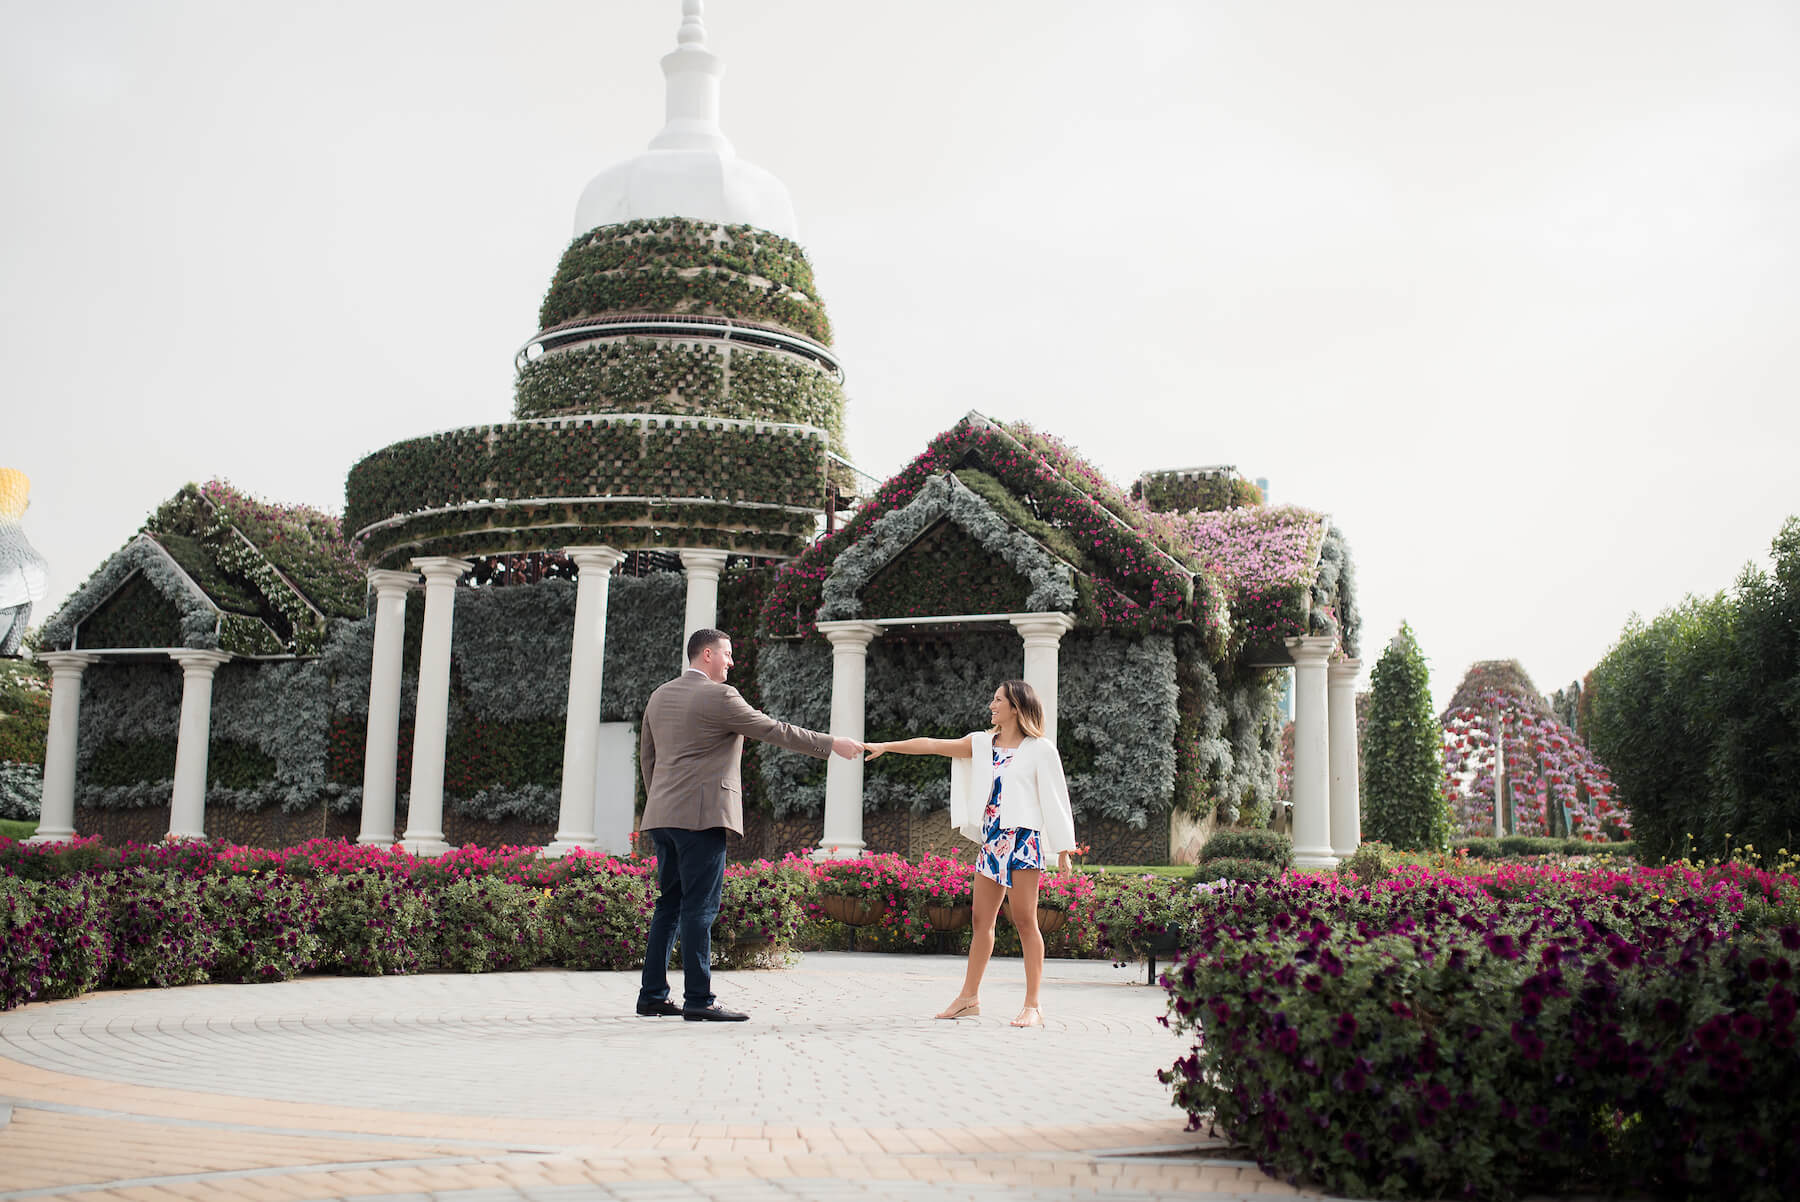 Couple dancing together in the Dubai Miracle Garden